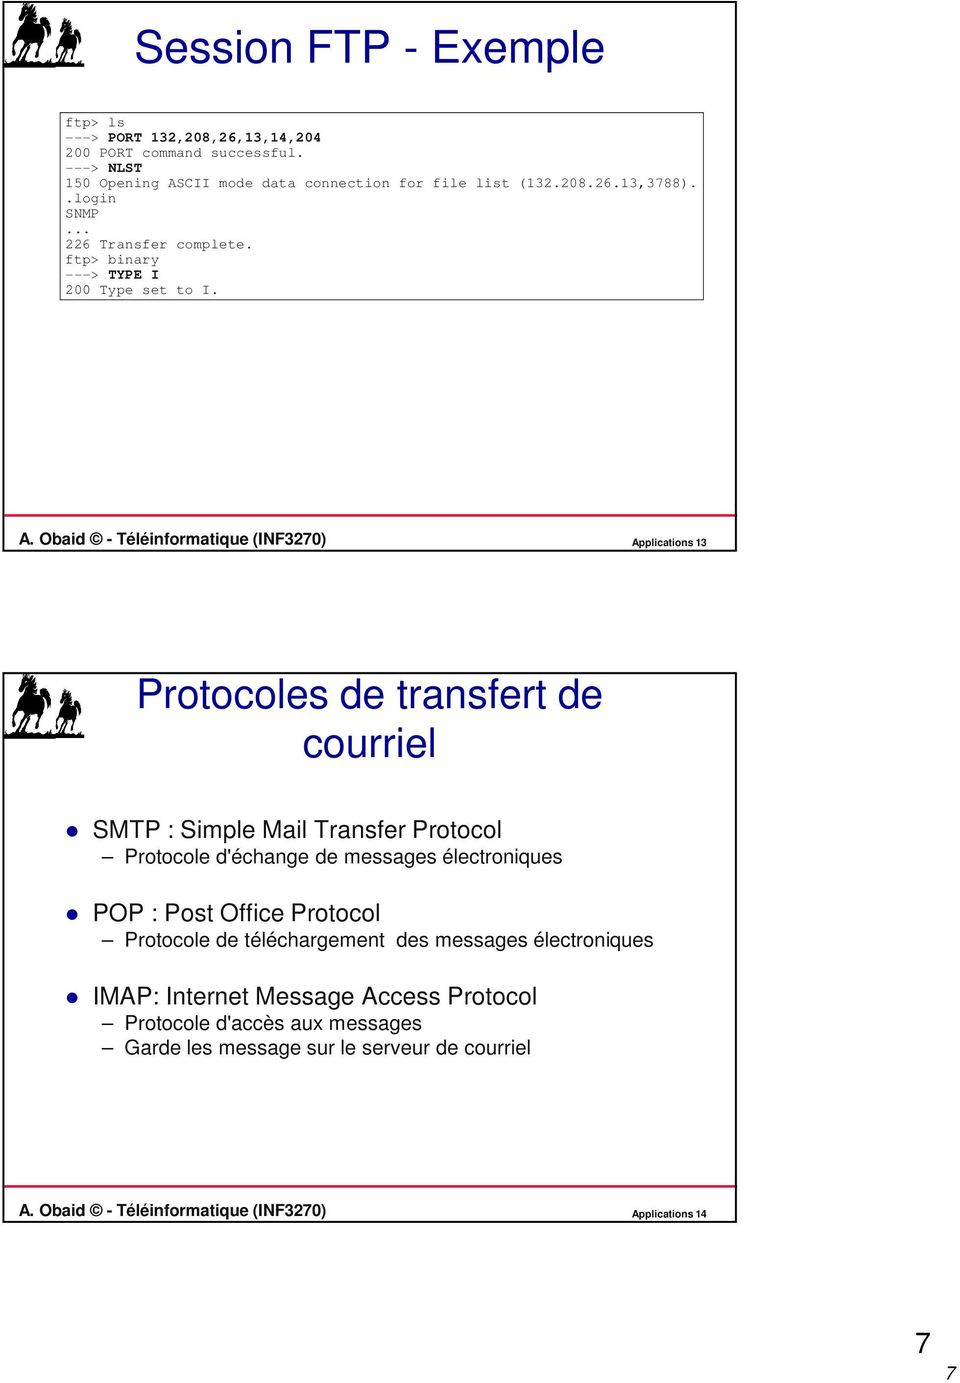 Obaid - Téléinformatique (INF3270) Applications 13 Protocoles de transfert de courriel SMTP : Simple Mail Transfer Protocol Protocole d'échange de messages électroniques